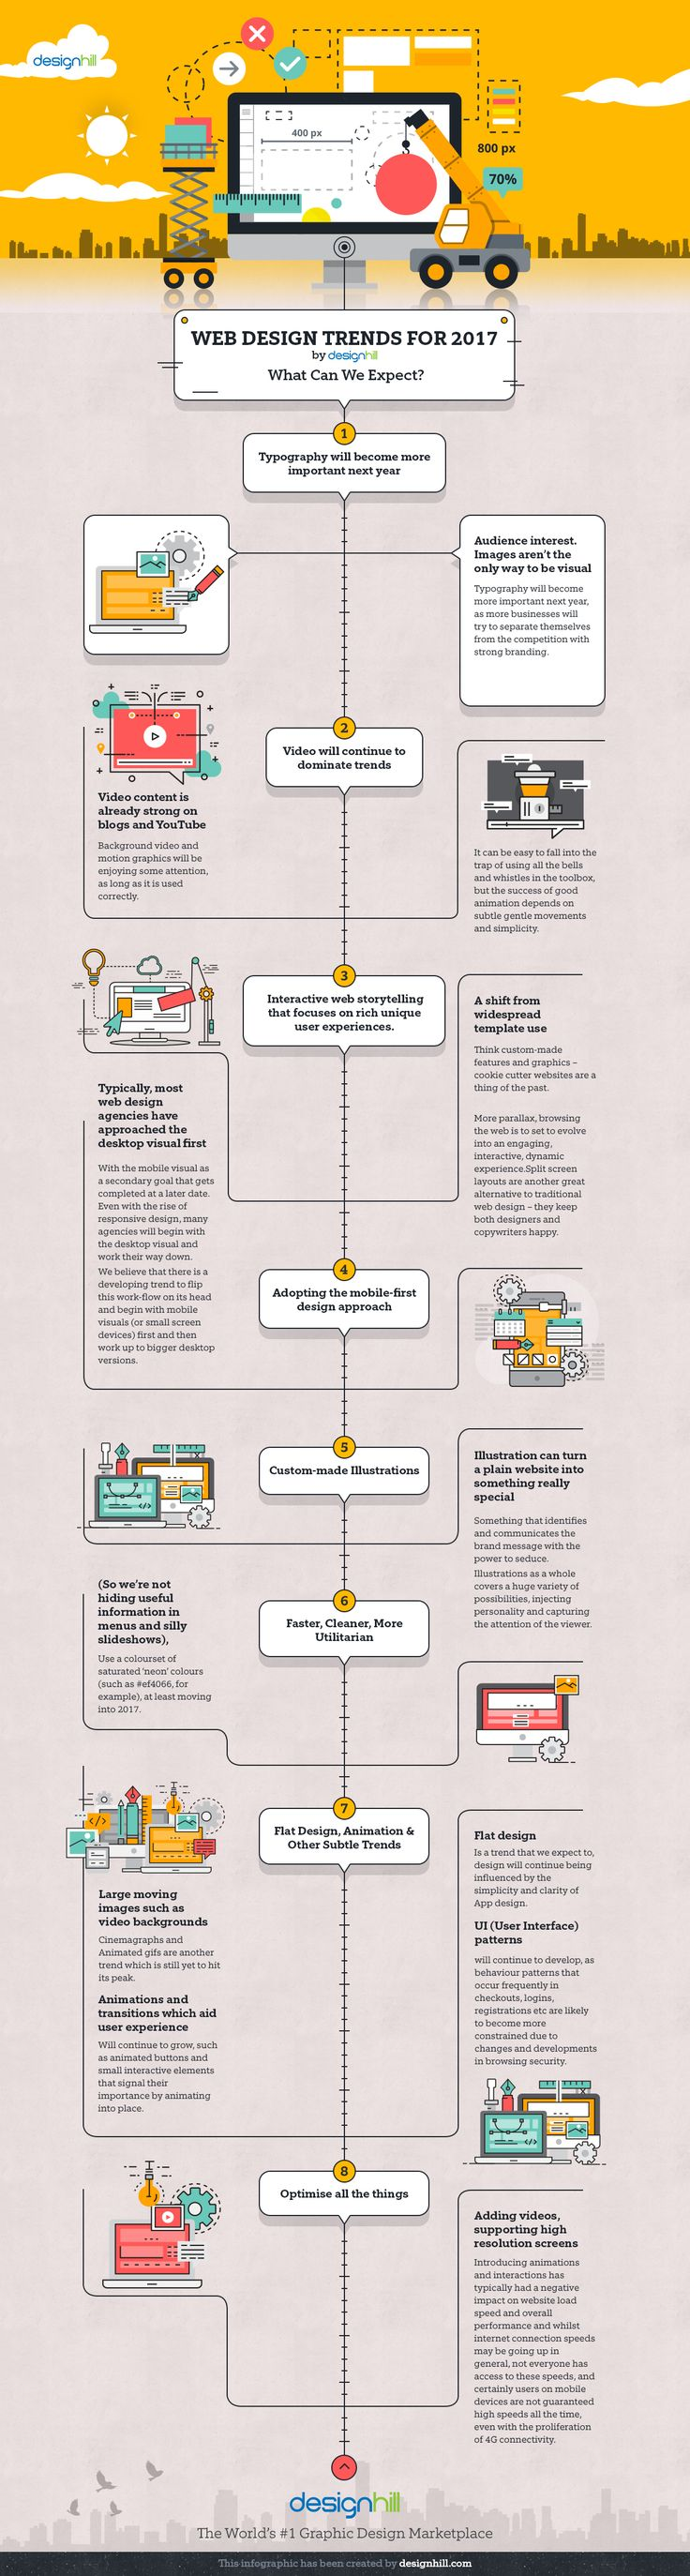 Your Website is Old & Dated! Follow These Modern Trends Instead #WebDesign #Infographic